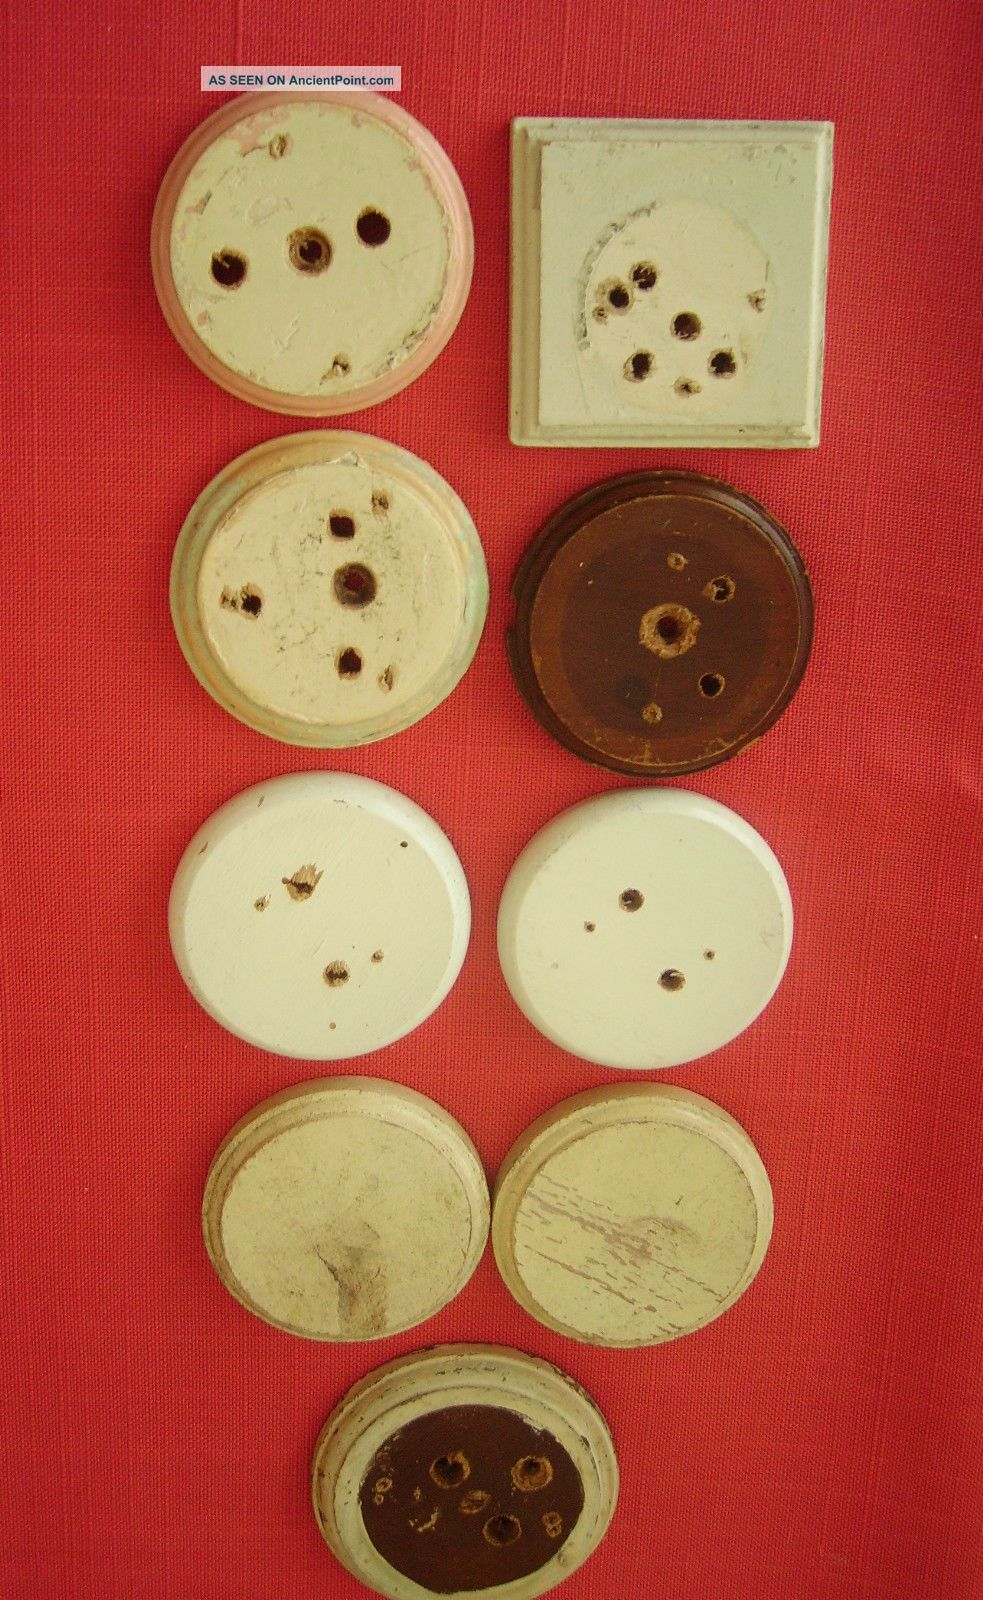 9 Wooden Back Plates For Bakelite Light Switches Patress Plinth Light Switches photo